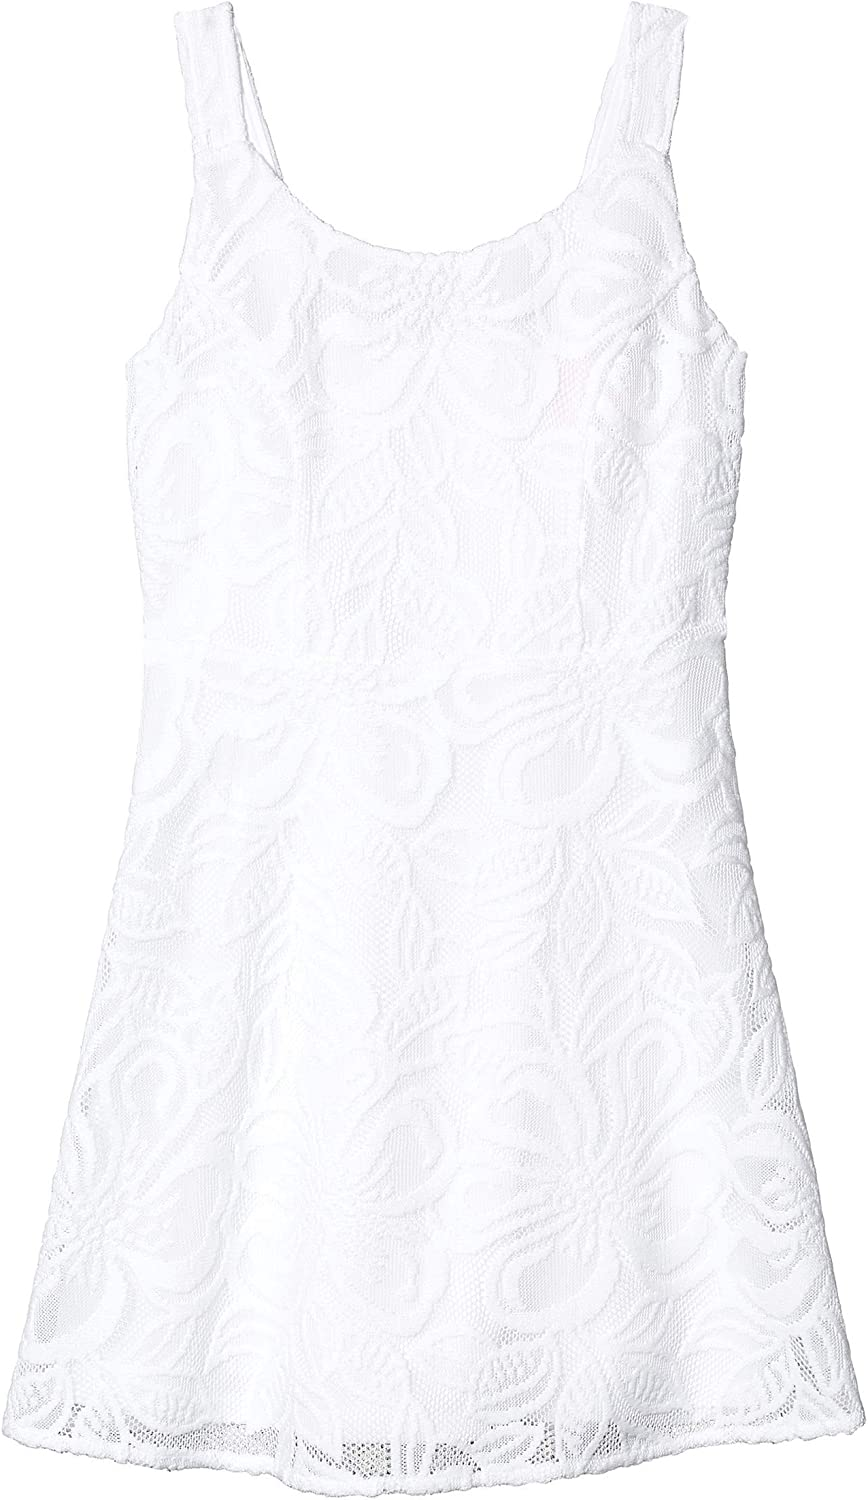 All items in the store Fresno Mall Lilly Pulitzer Kids Girl's Big Dress Daffodil